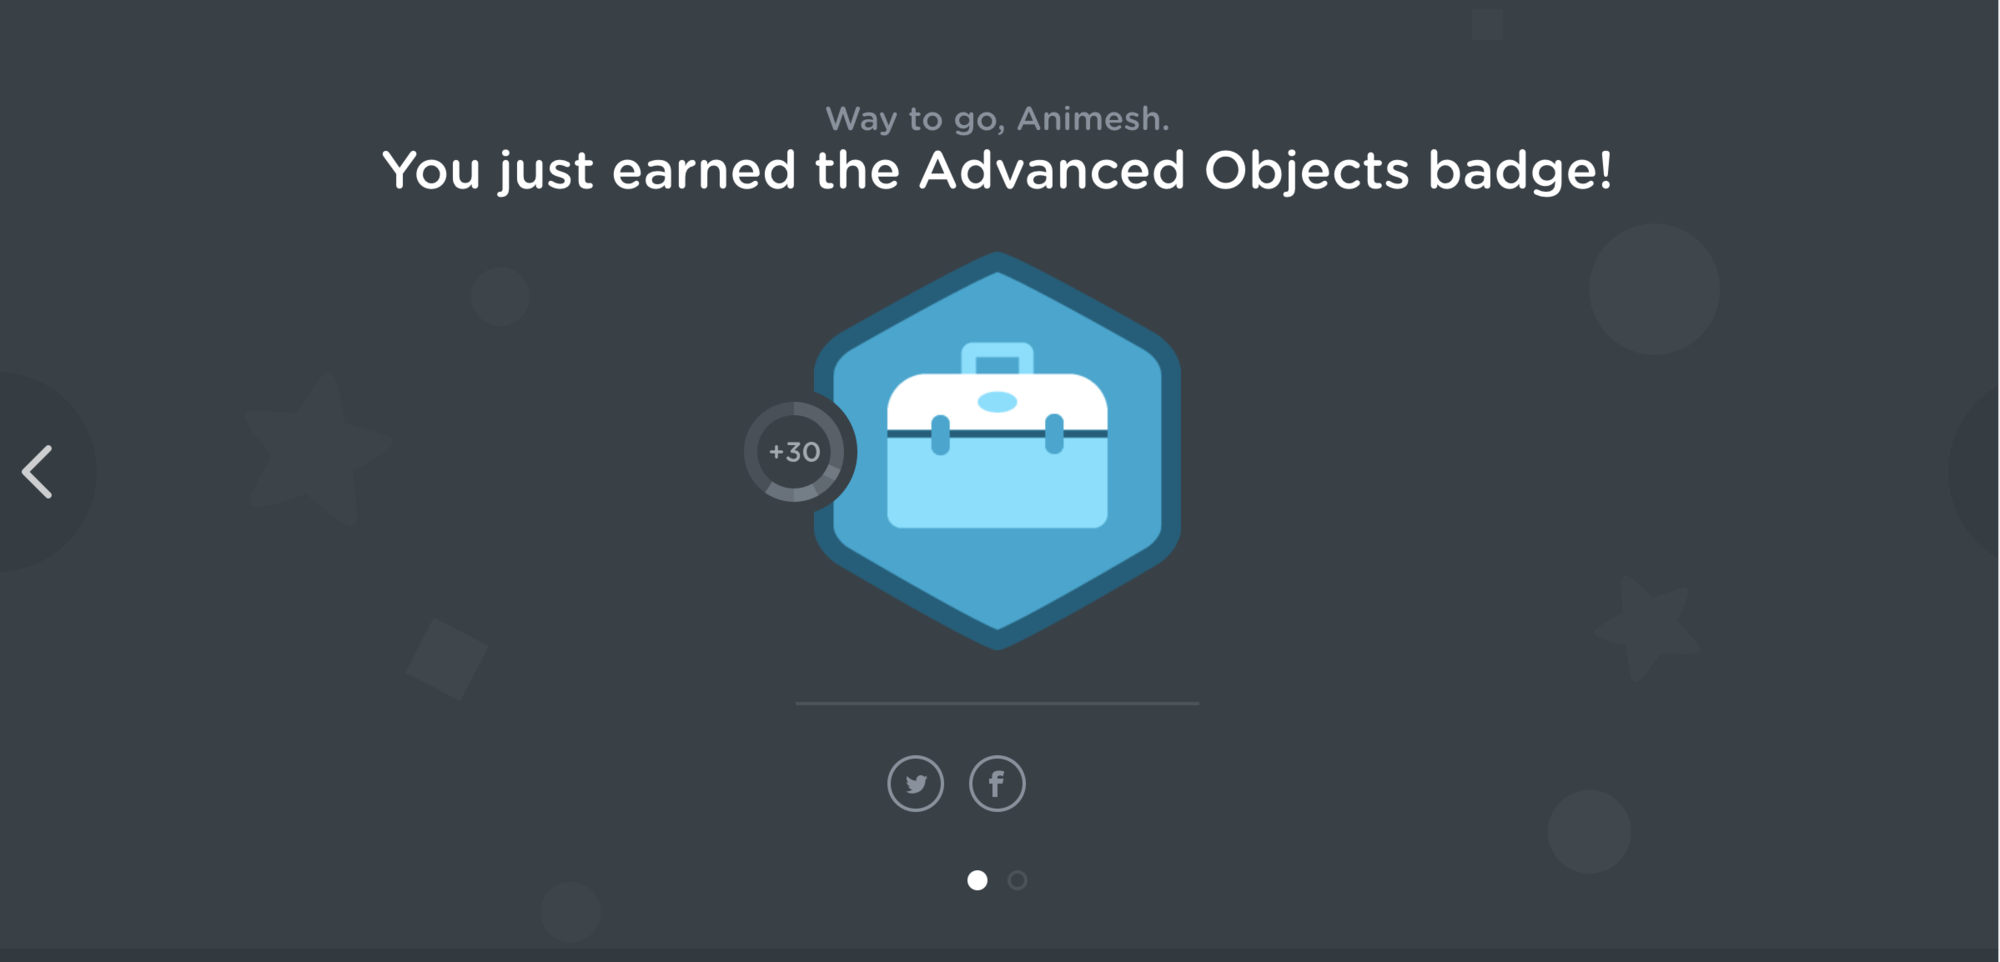 Advance Object TreeHouse Badge.